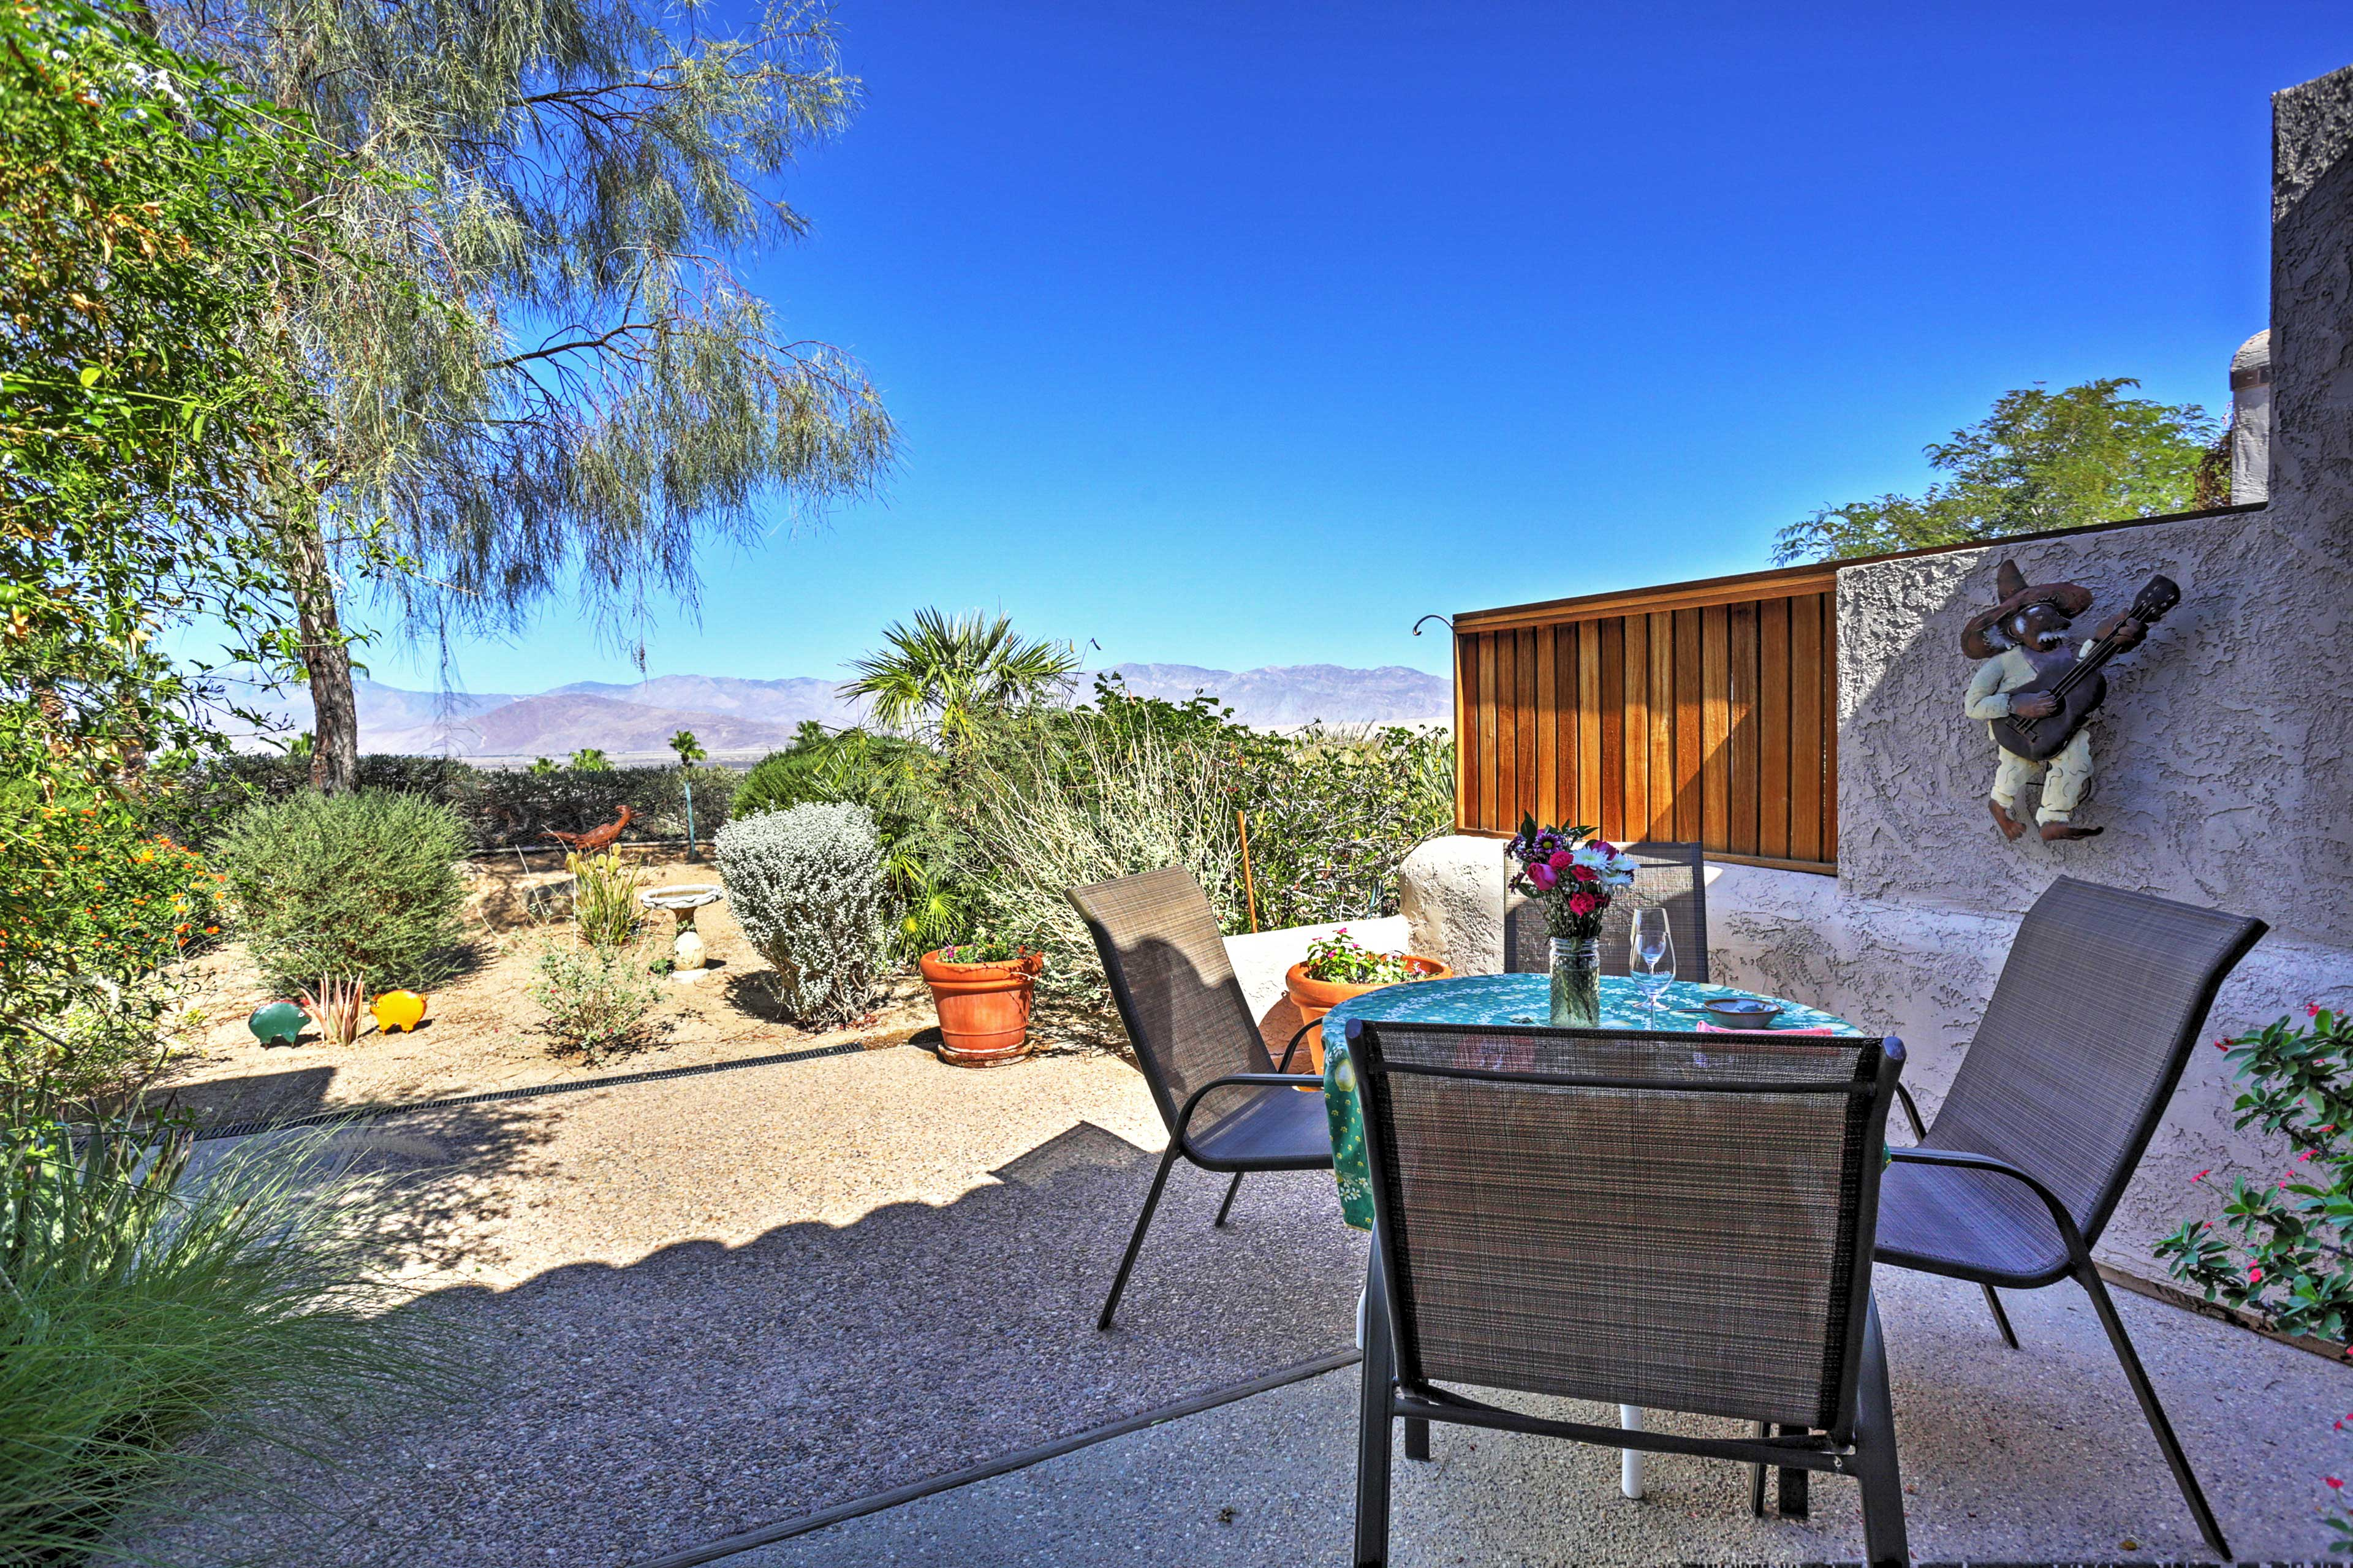 Enjoy dining al fresco with your loved ones on the furnished back patio.